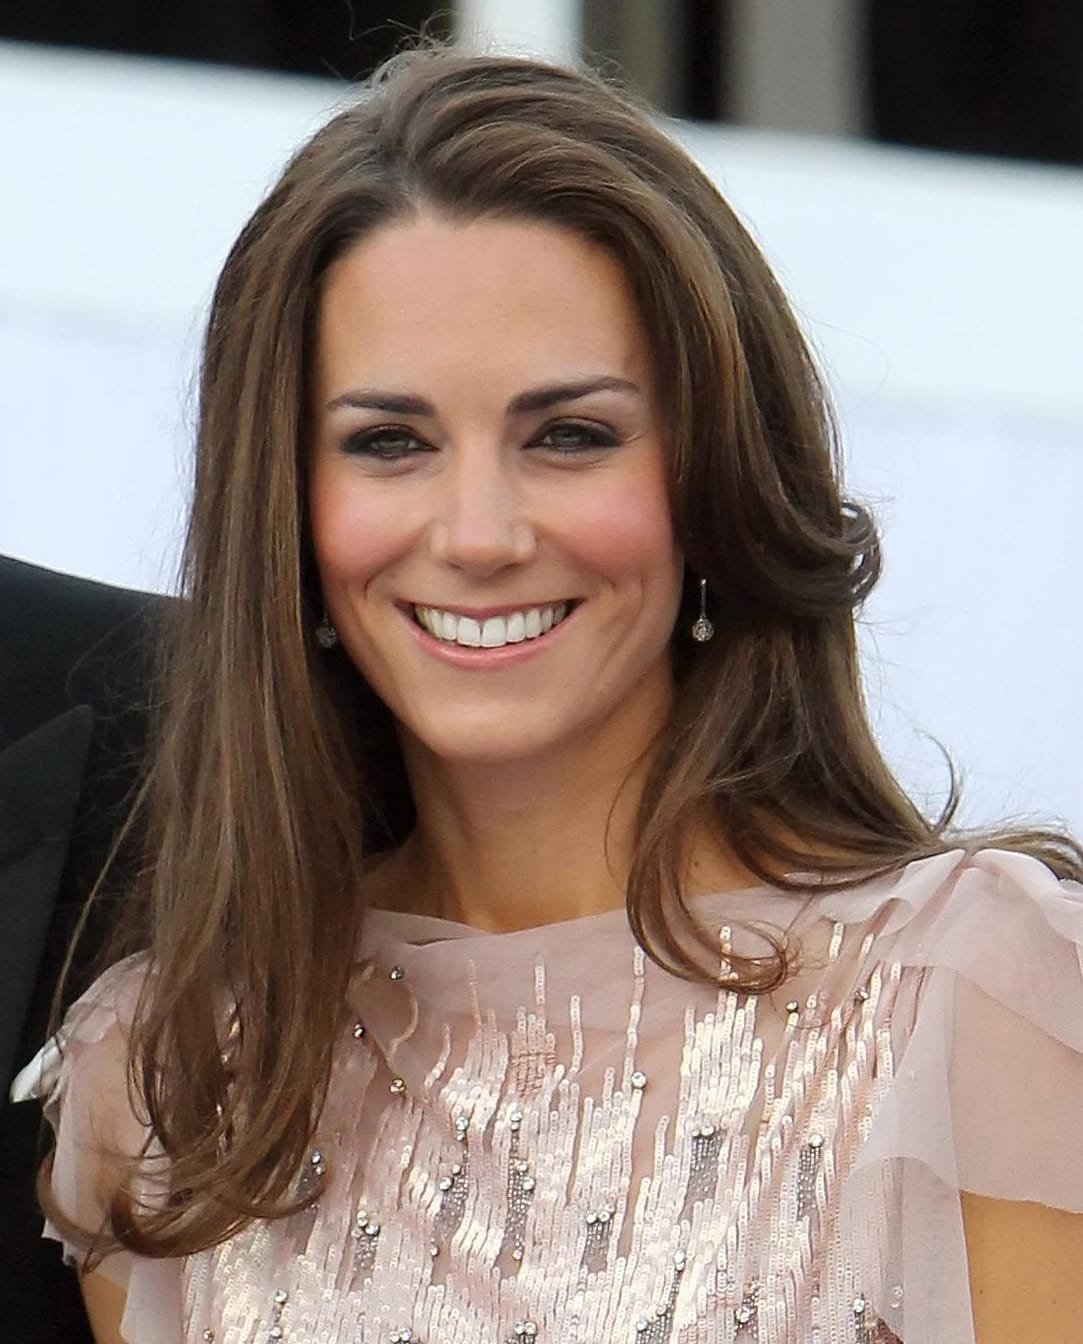 The Classy Kate Middleton | Food with Feeling